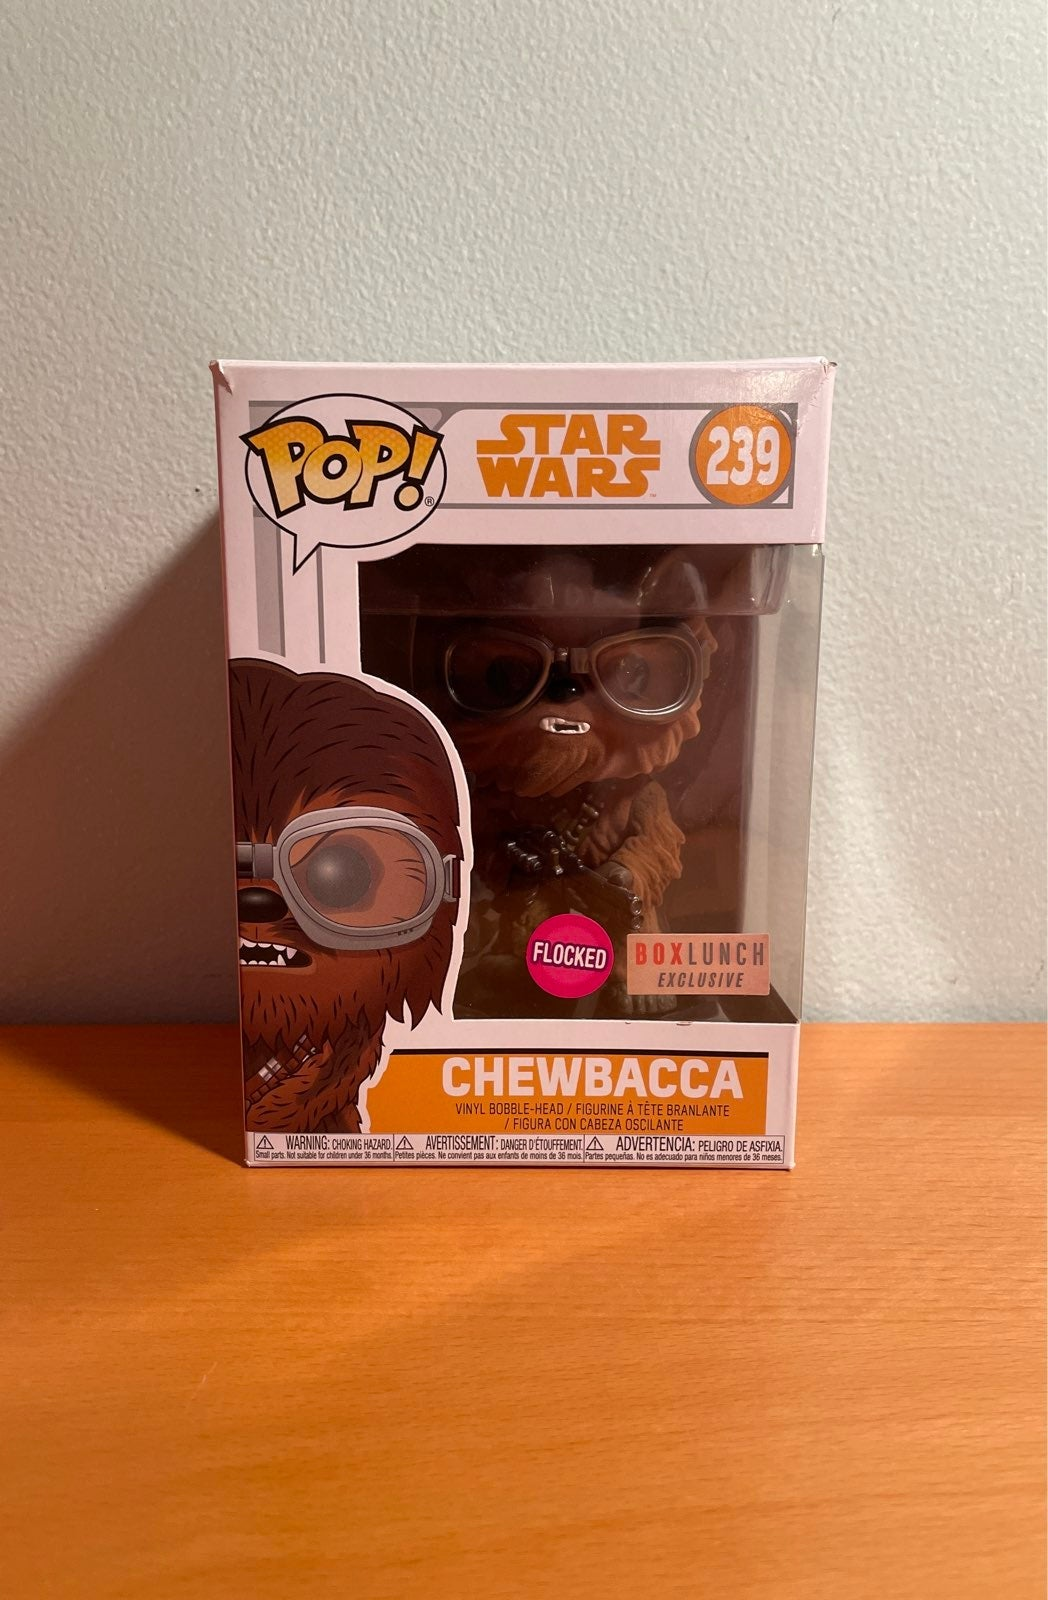 Box Lunch exclusive Flocked Chewbacca